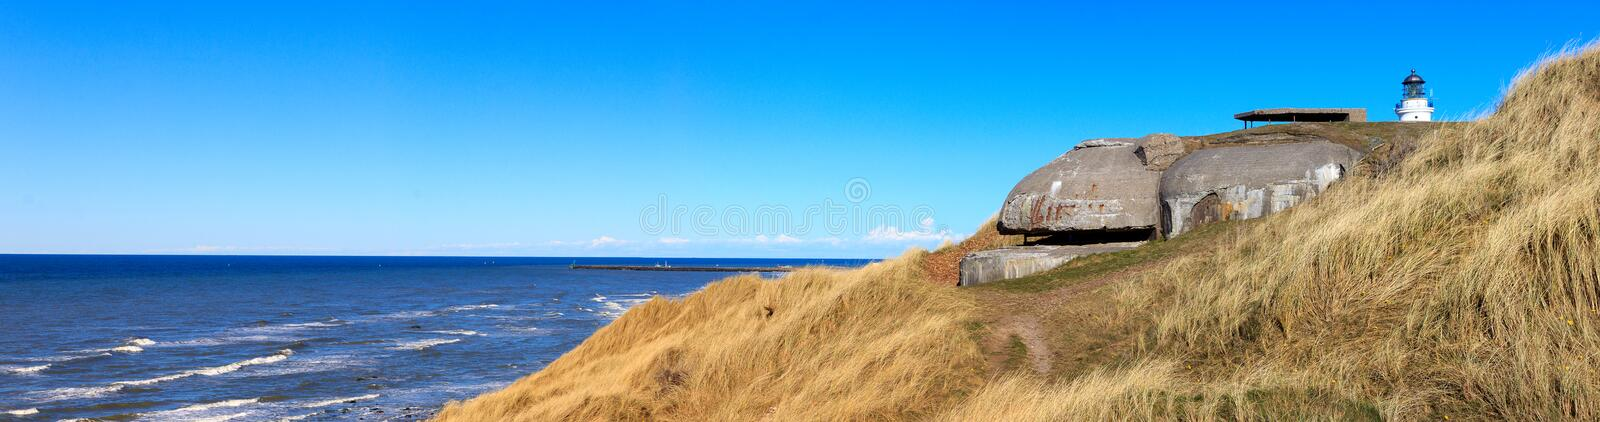 Lighthouse of Hirtshals with bunker stock images